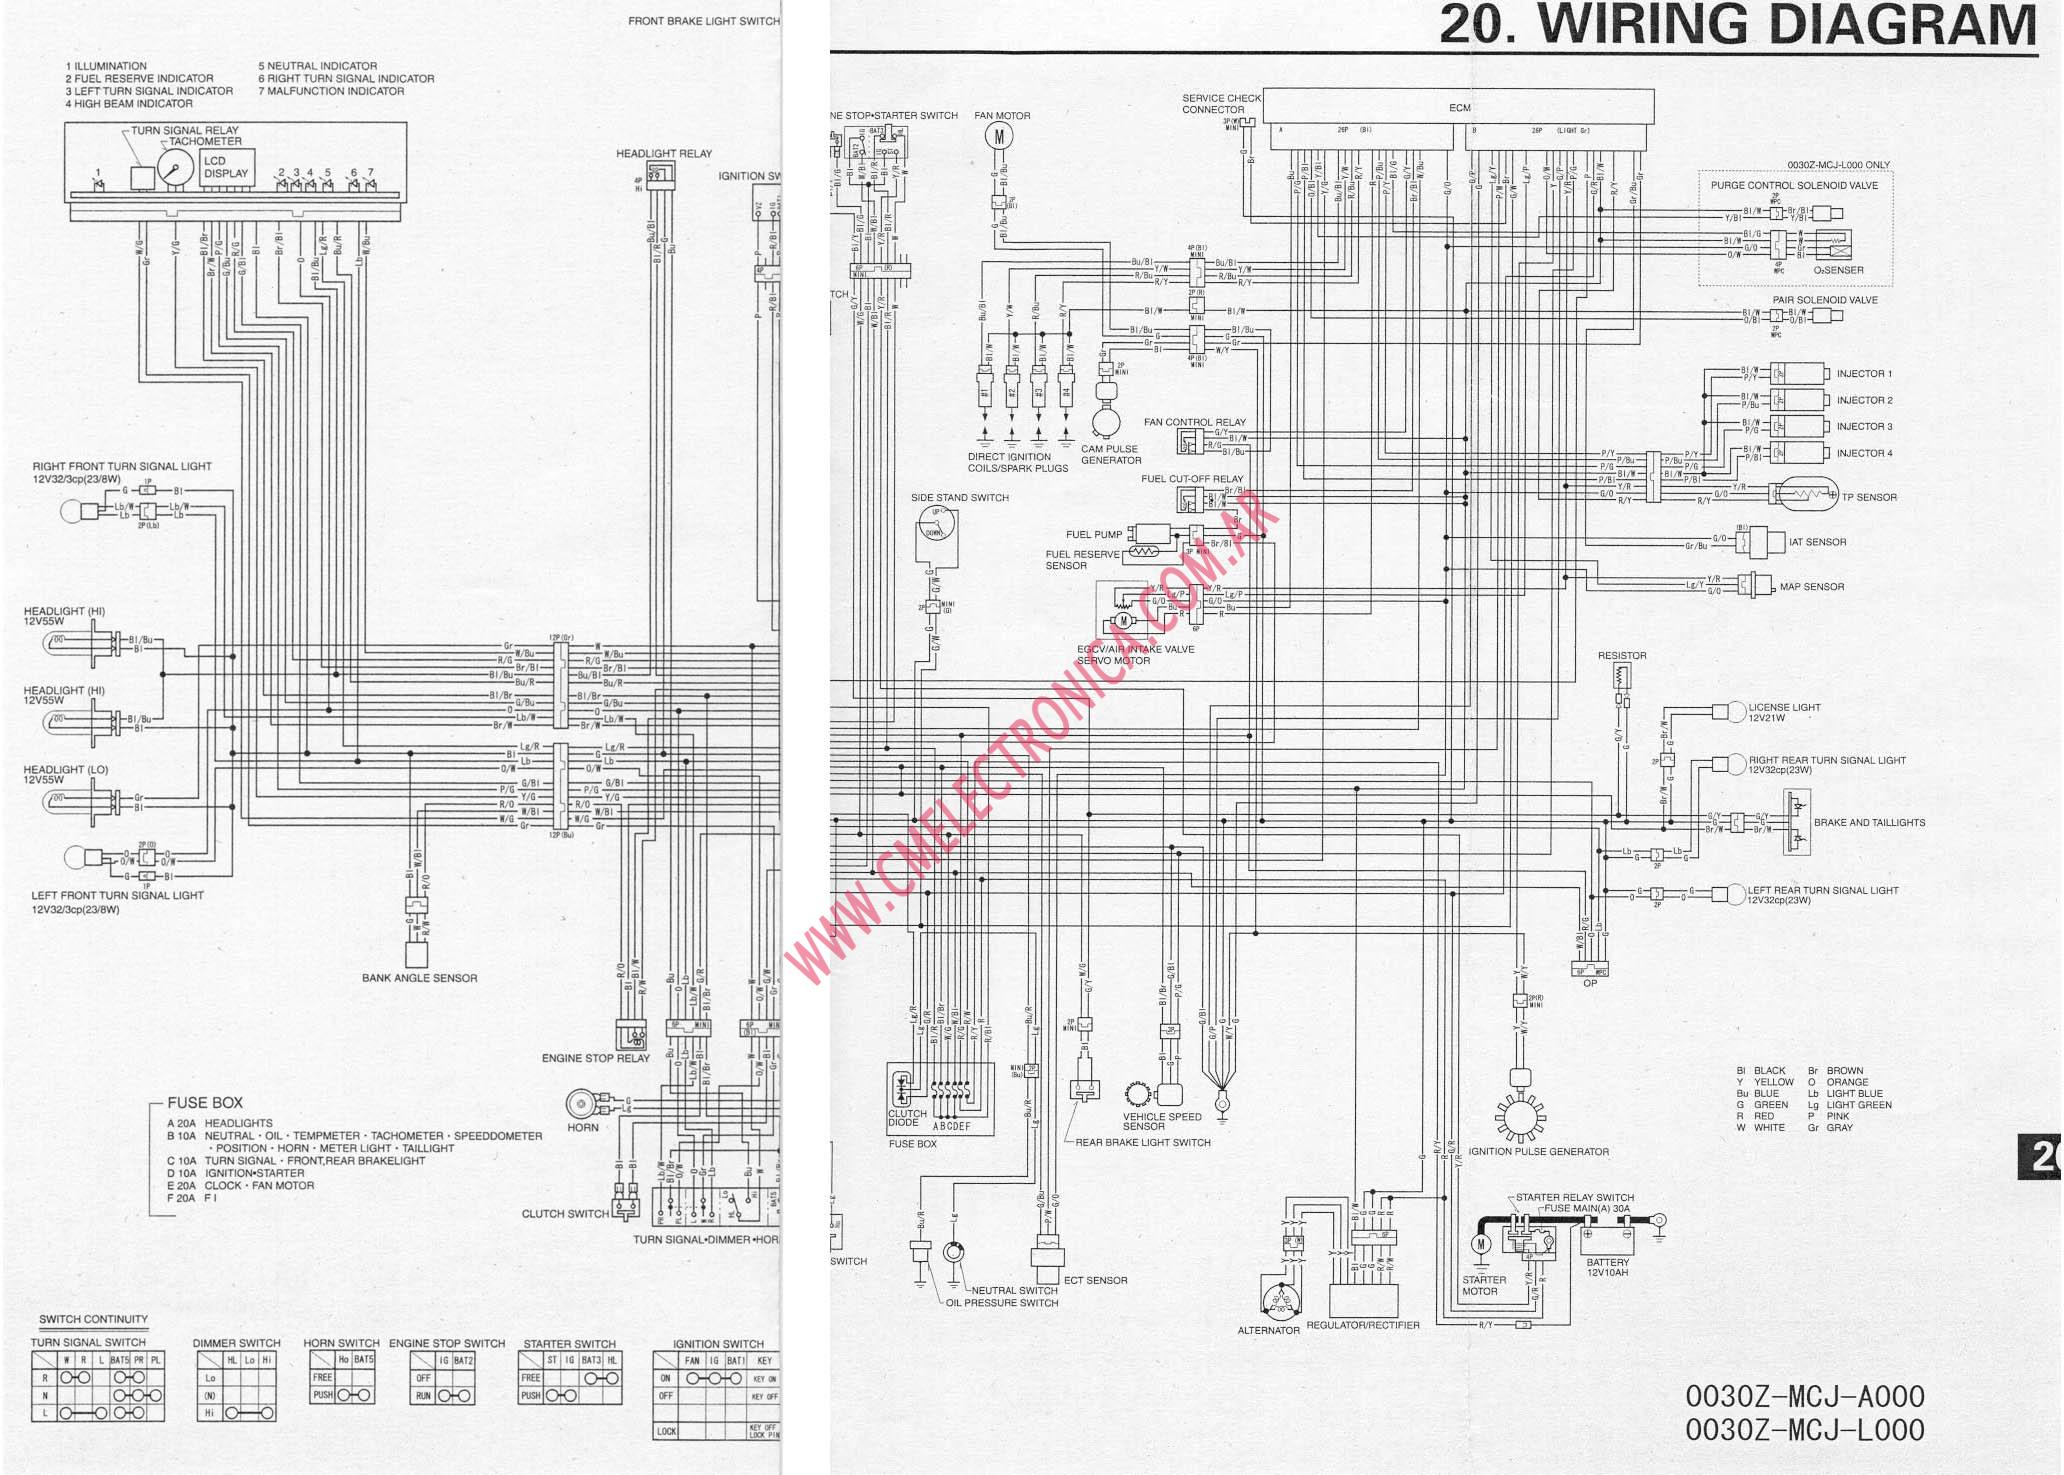 Honda 954 Wiring Diagram Simple Wiring Diagram Toshiba Wiring Diagram Honda  954 Wiring Diagram